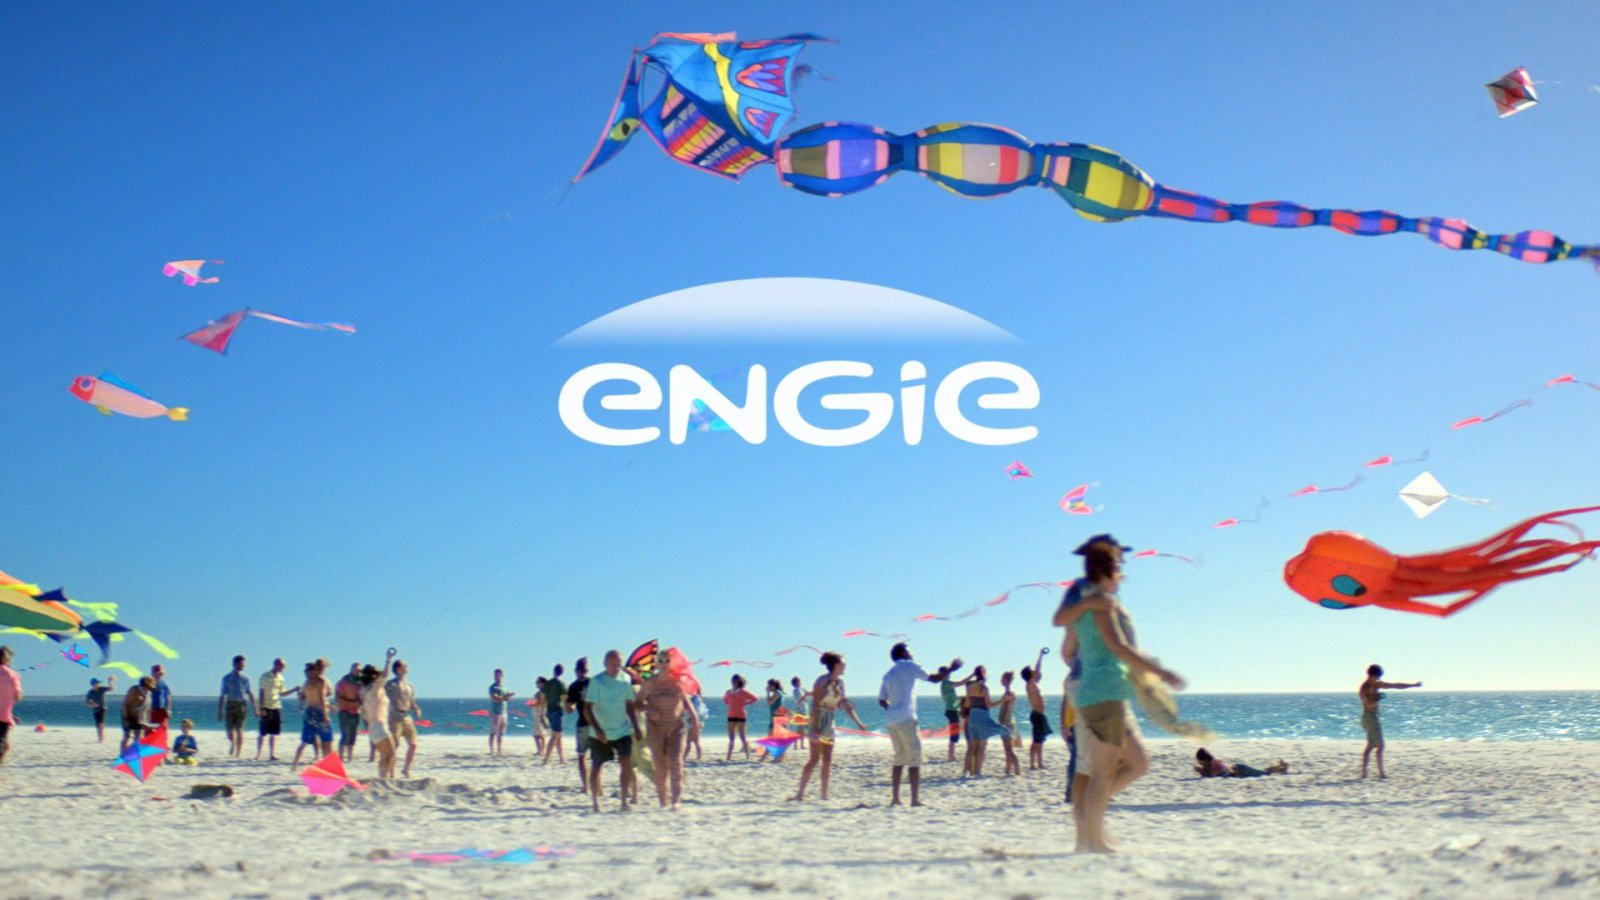 Rebranding GDF Suez - ENGIE - Noticias de Marcas Corporate